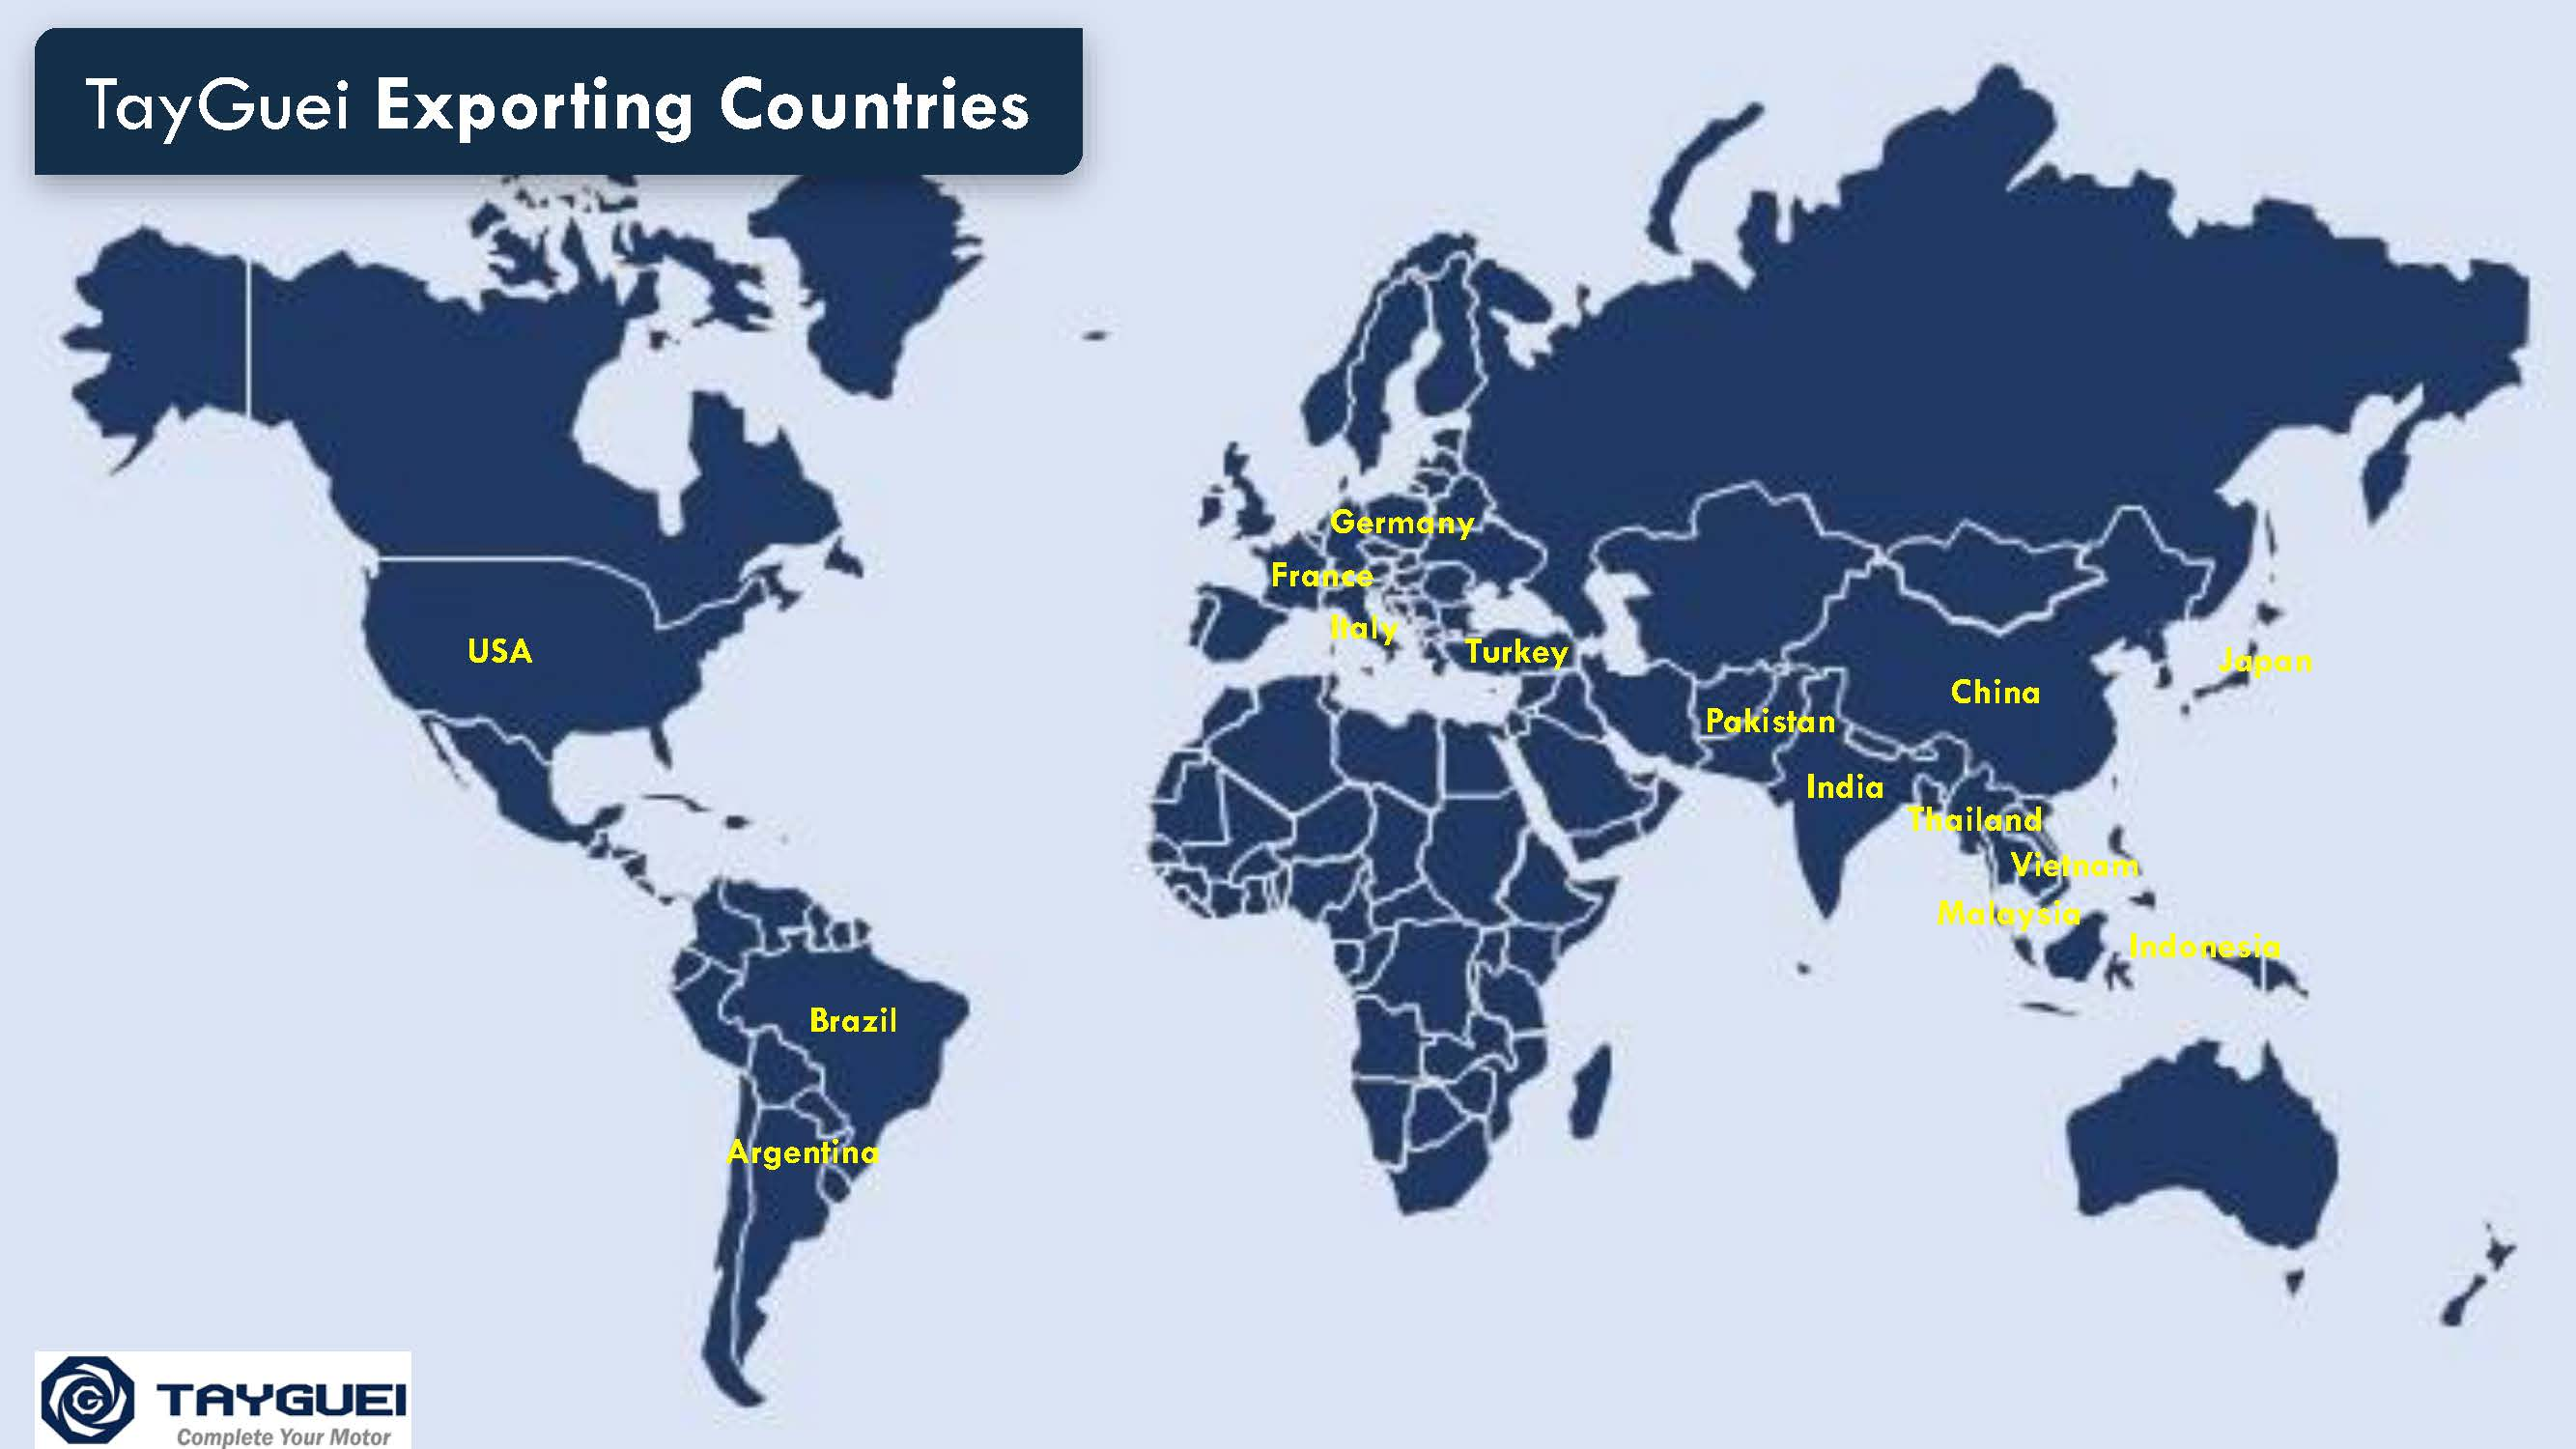 Products are exported over 15 countries worldwide.